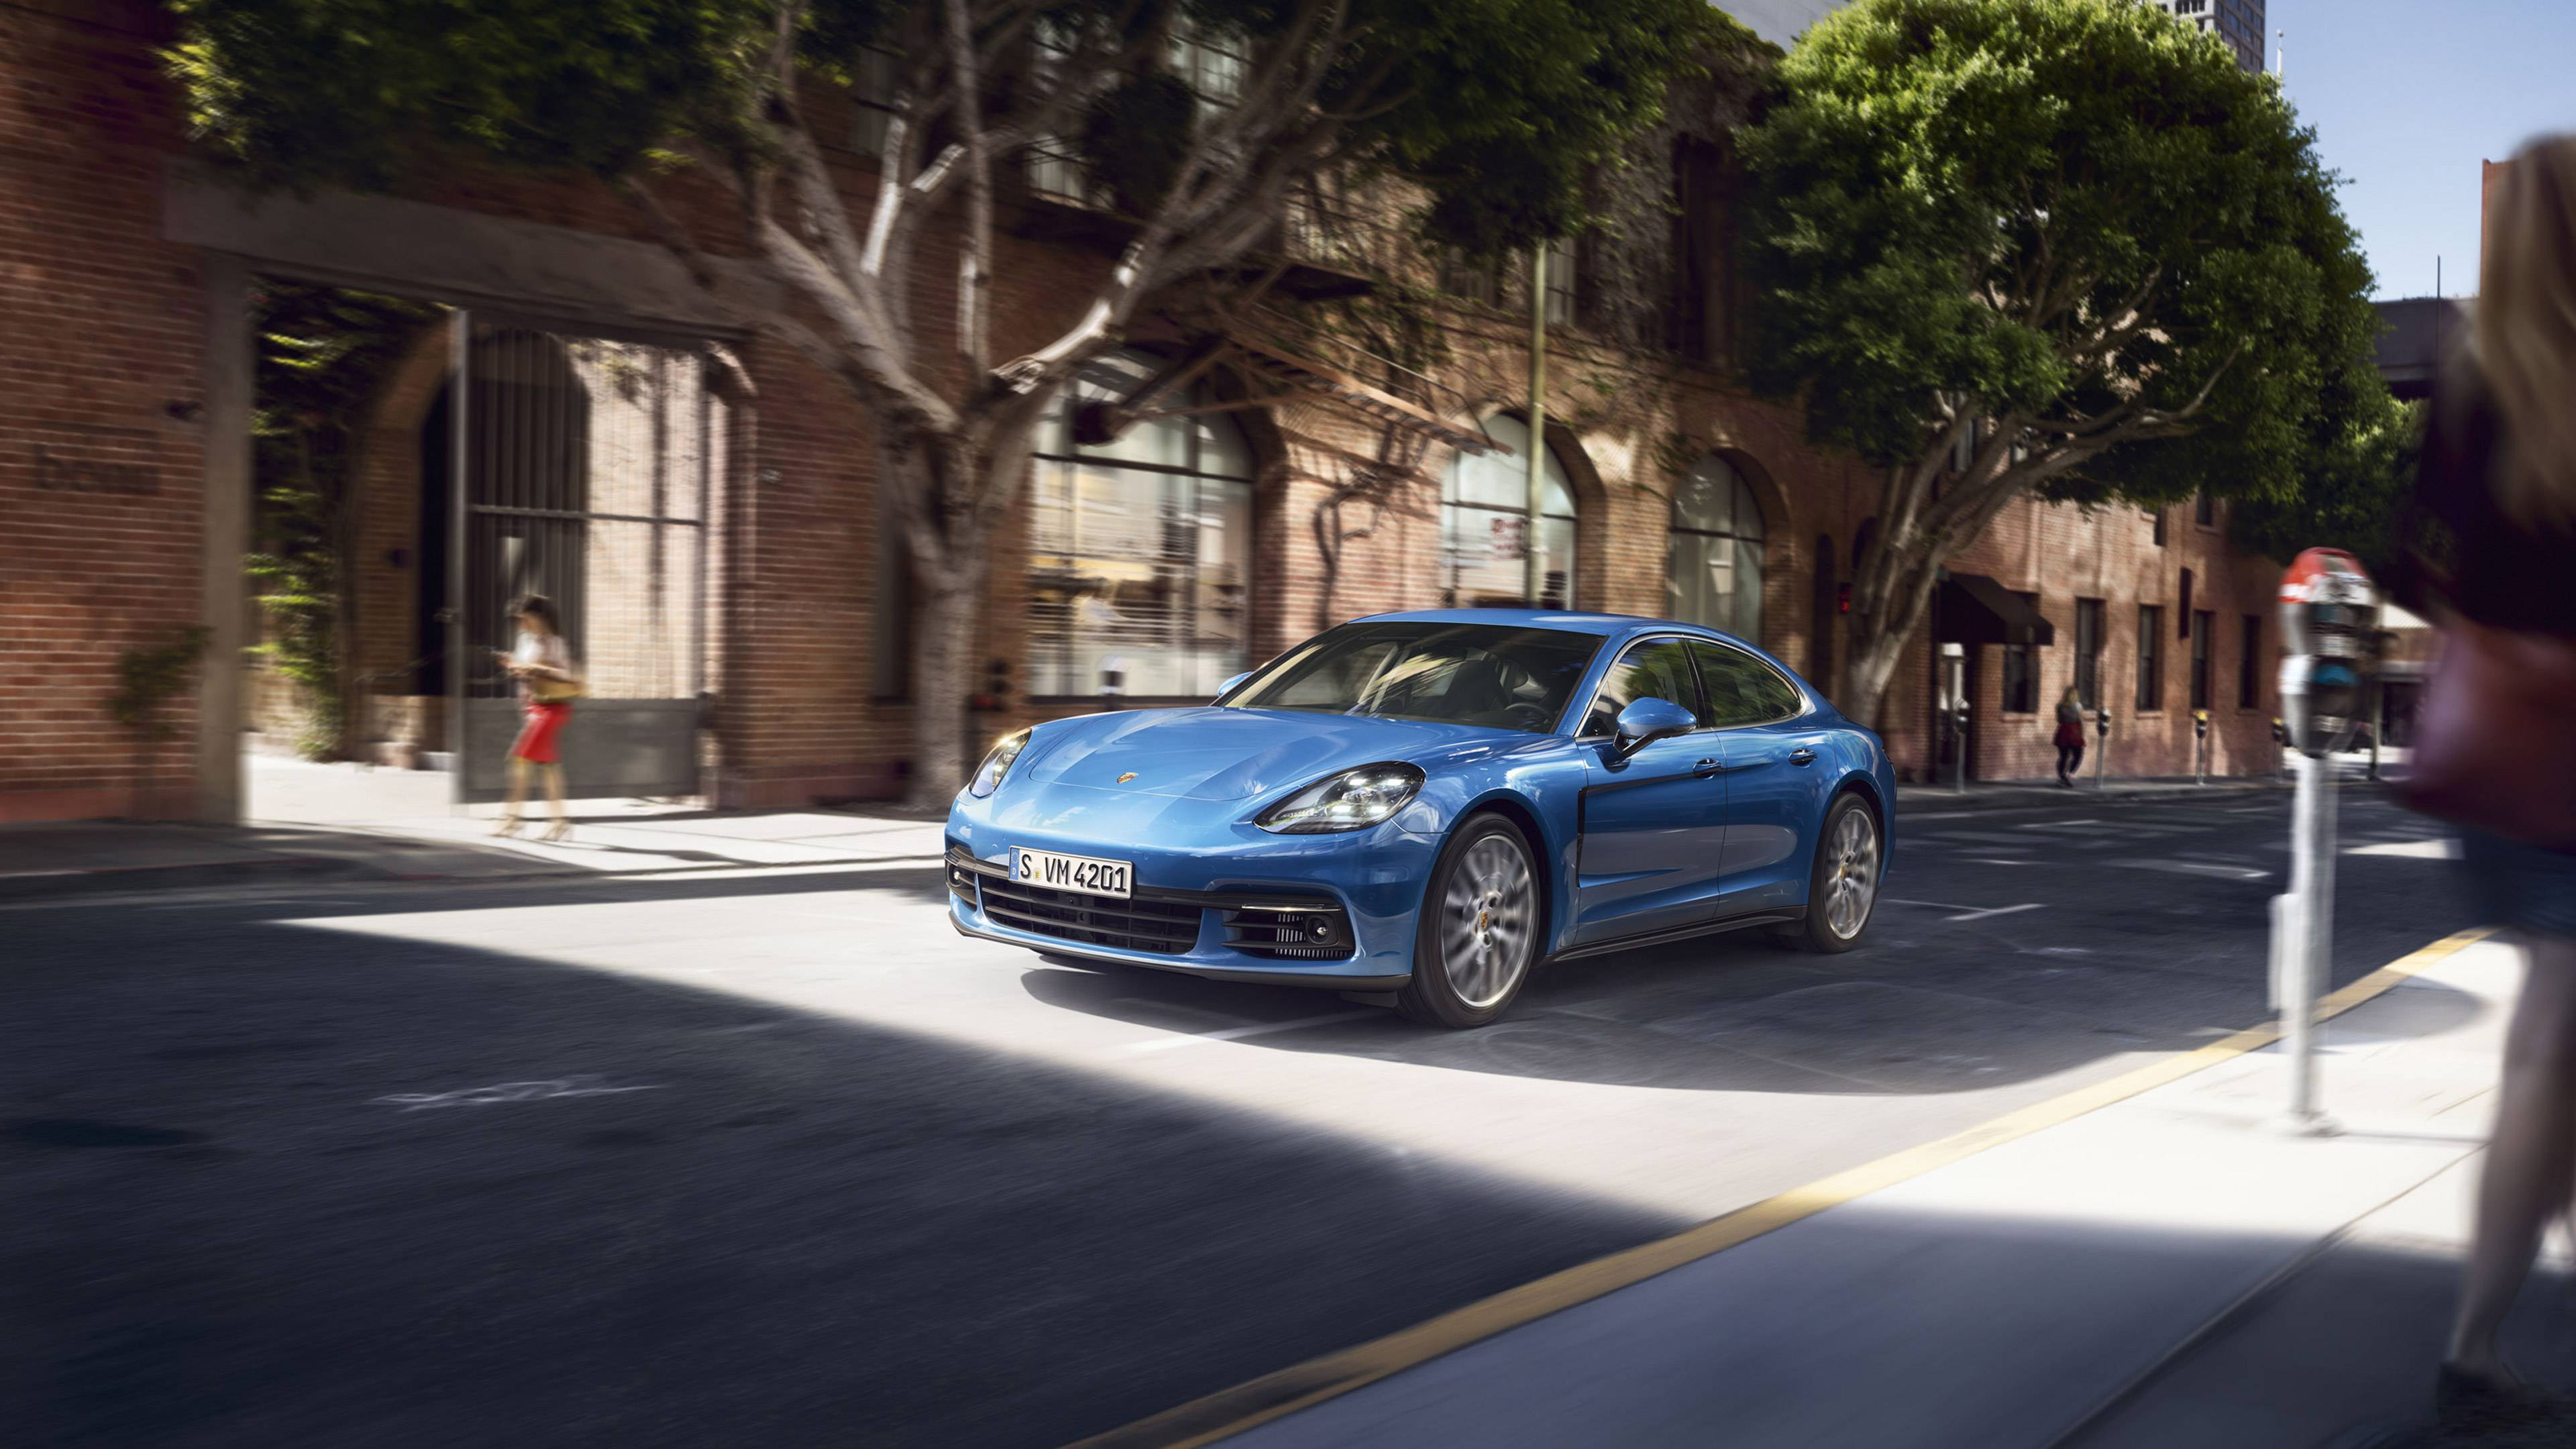 new 2017 porsche panamera 1539104604 - New 2017 Porsche Panamera - porsche wallpapers, porsche panamera wallpapers, cars wallpapers